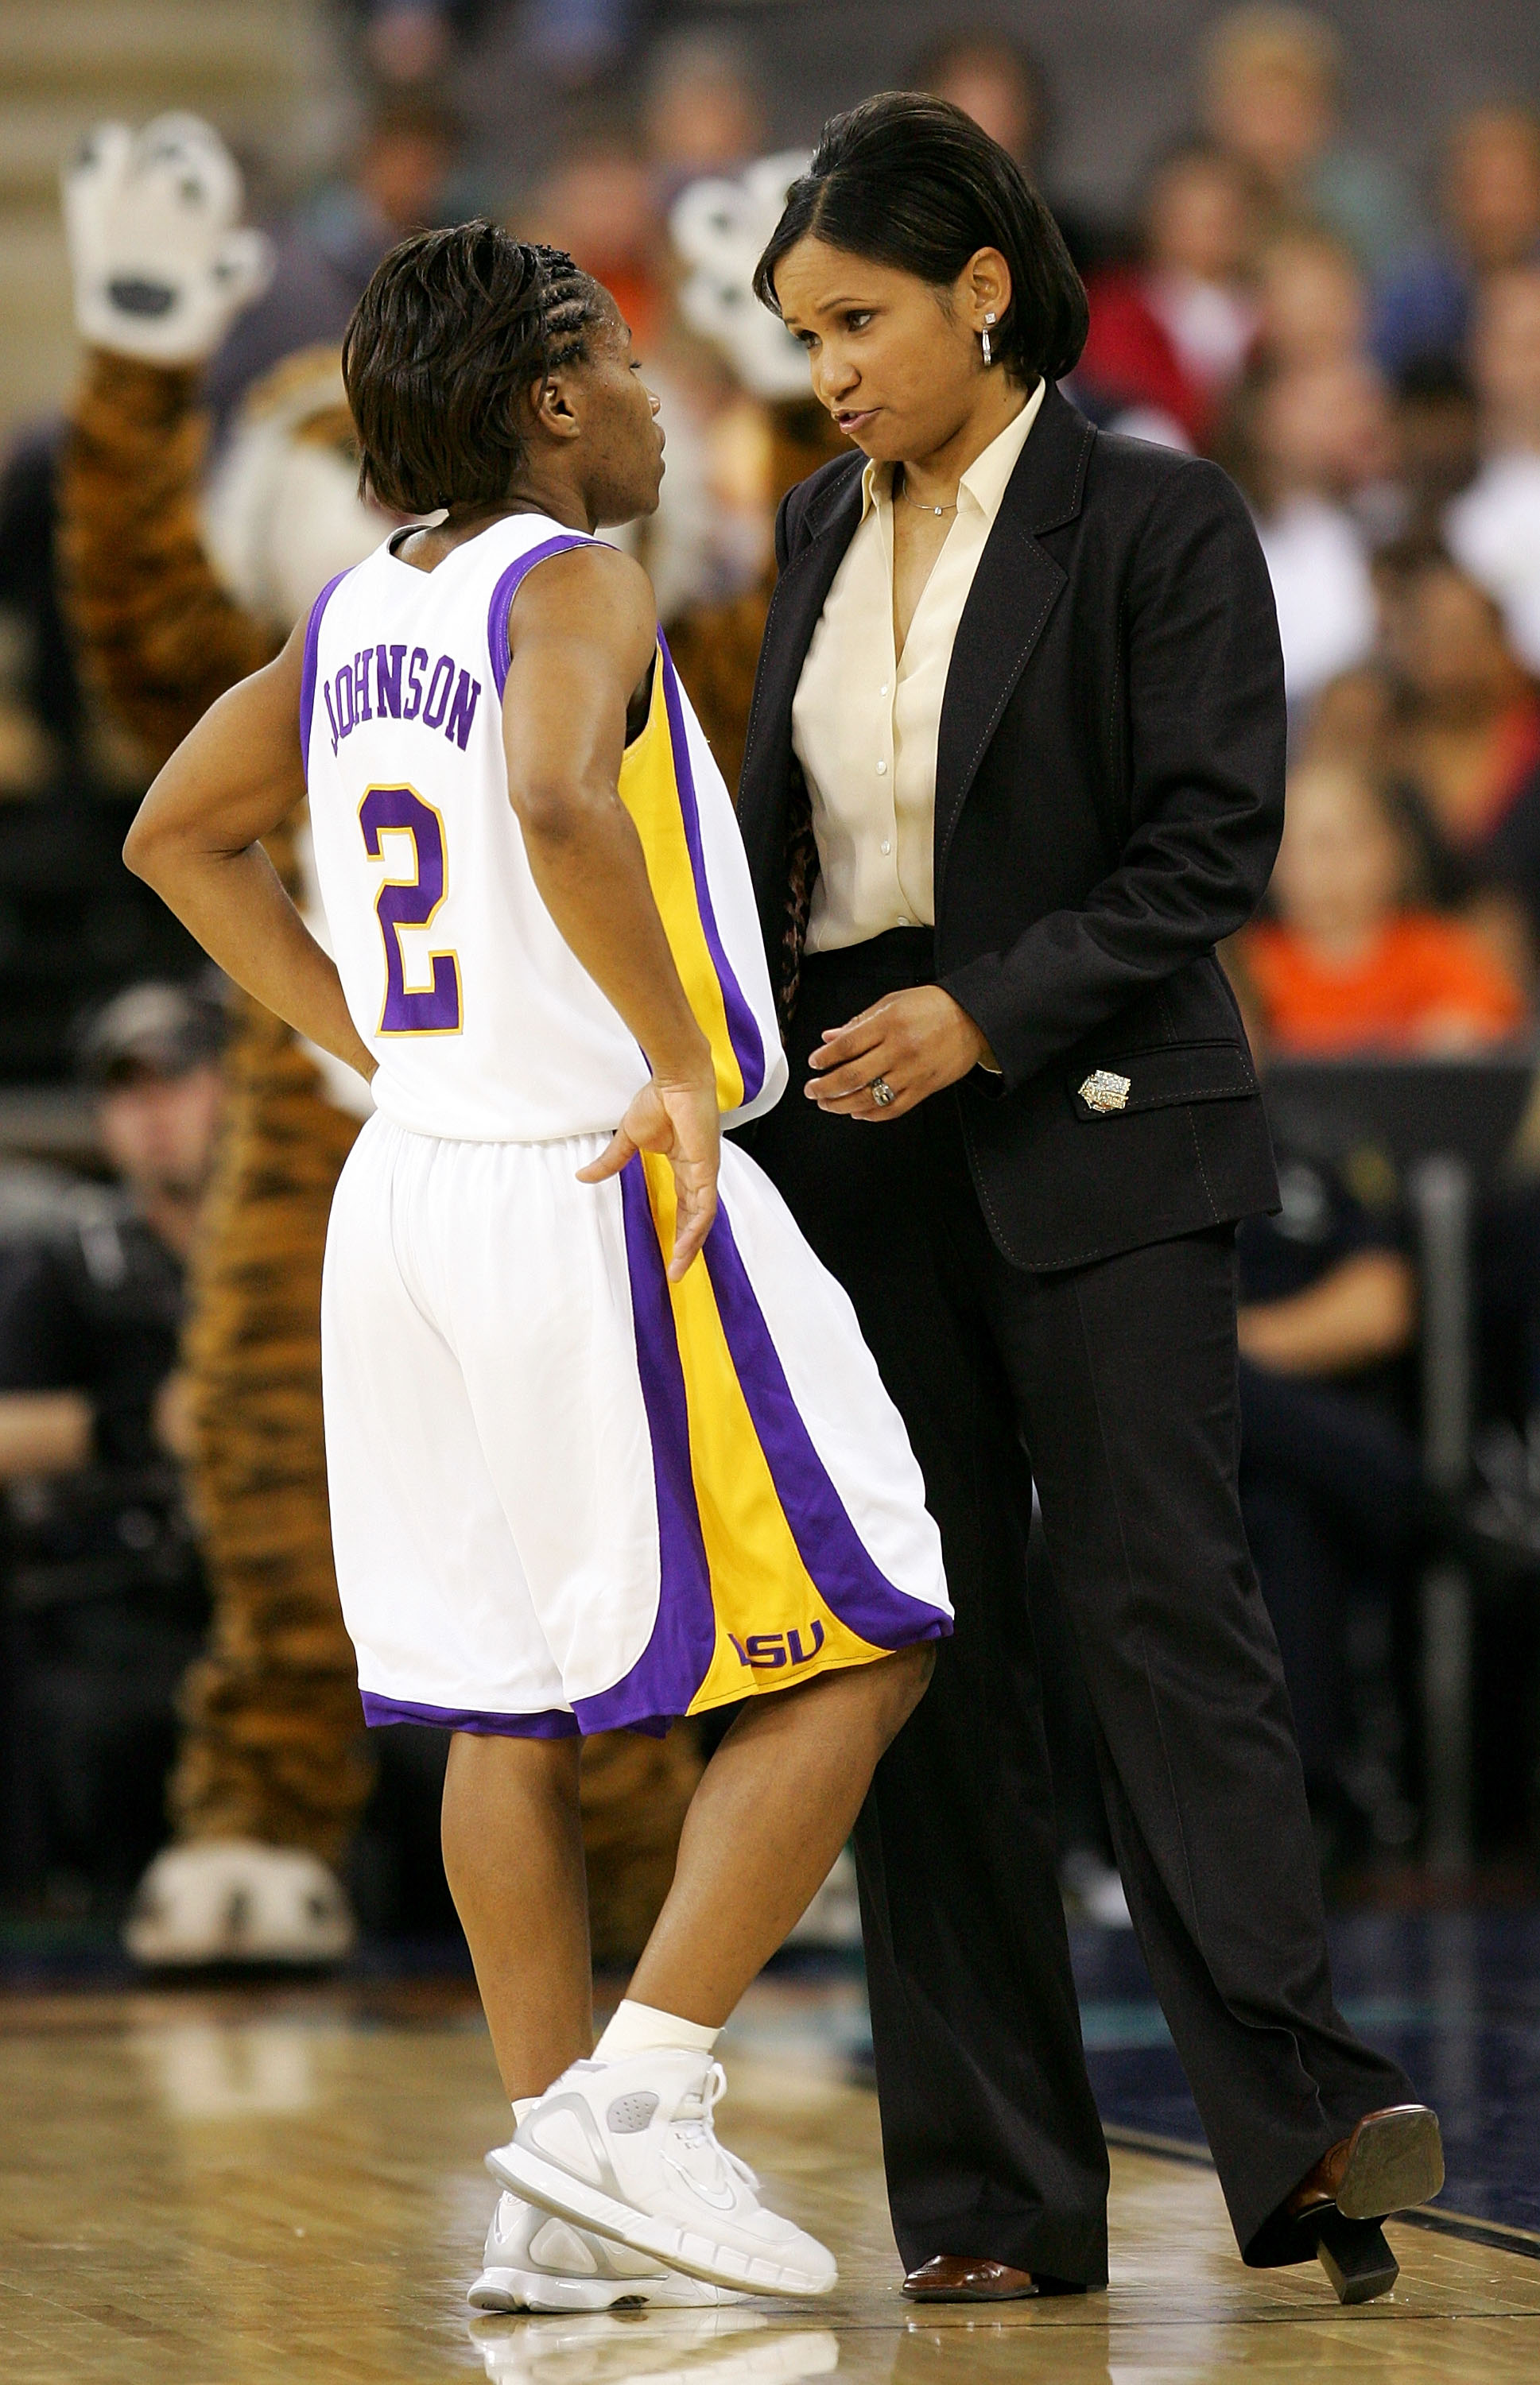 INDIANAPOLIS - APRIL 3:  Head coach Pokey Chatman talks to Temeka Johnson #2 of the Louisiana State Lady Tigers during a break in the action against of the Baylor Lady Bears in the Semifinal game of the Women's NCAA Basketball Championship on April 3, 200